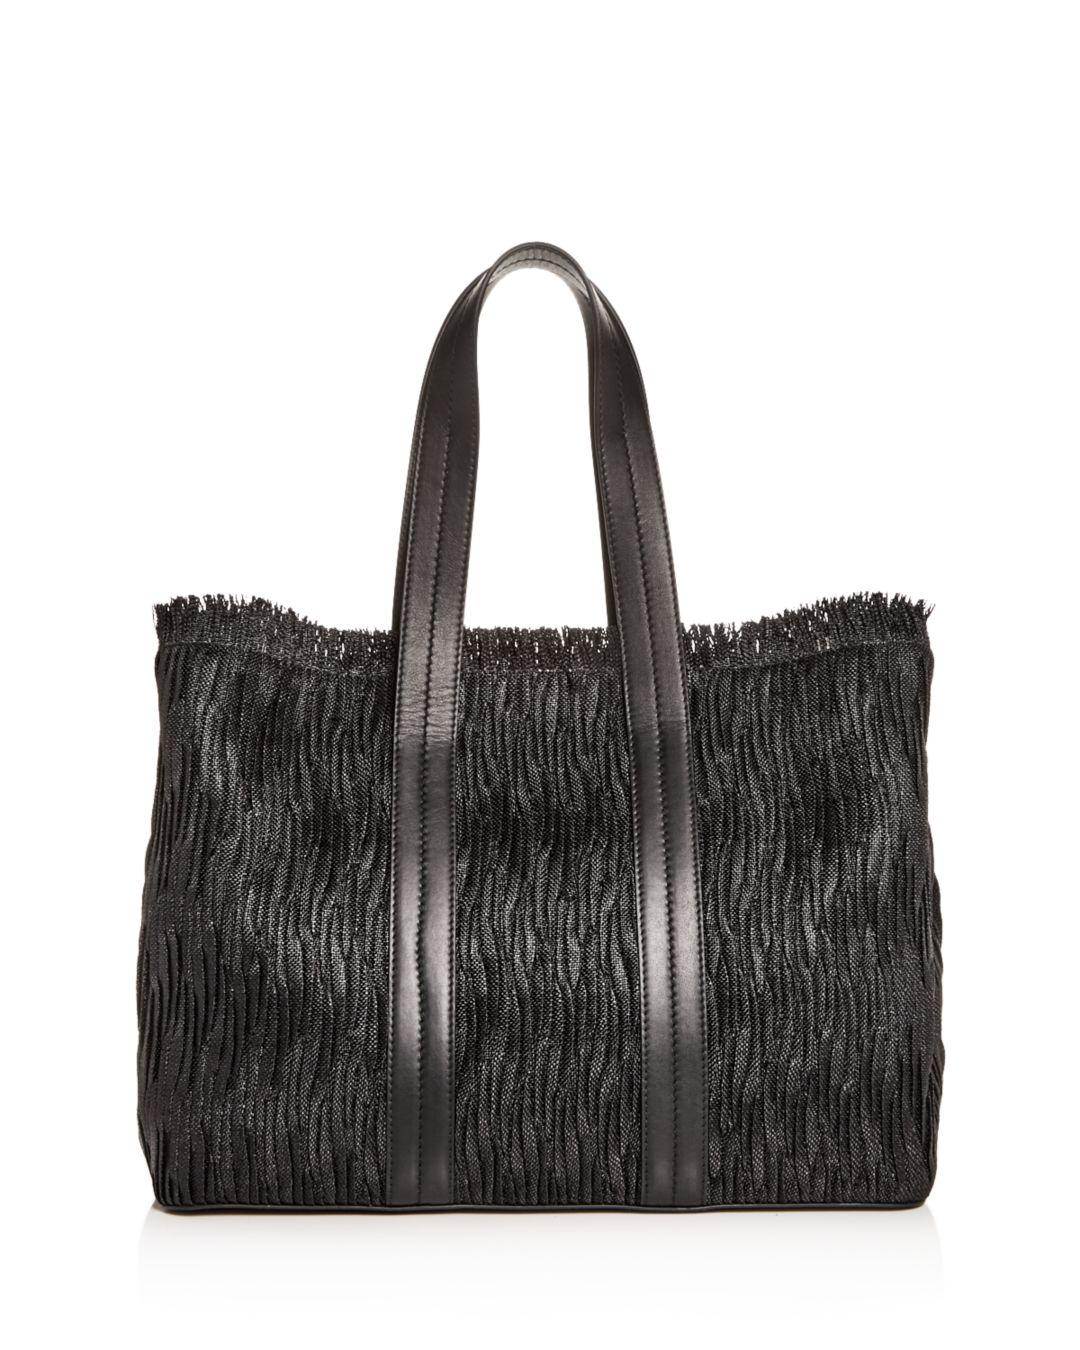 bc4f2736bf7d Max Mara Edvige Plissé Woven Tote Bag in Black - Lyst